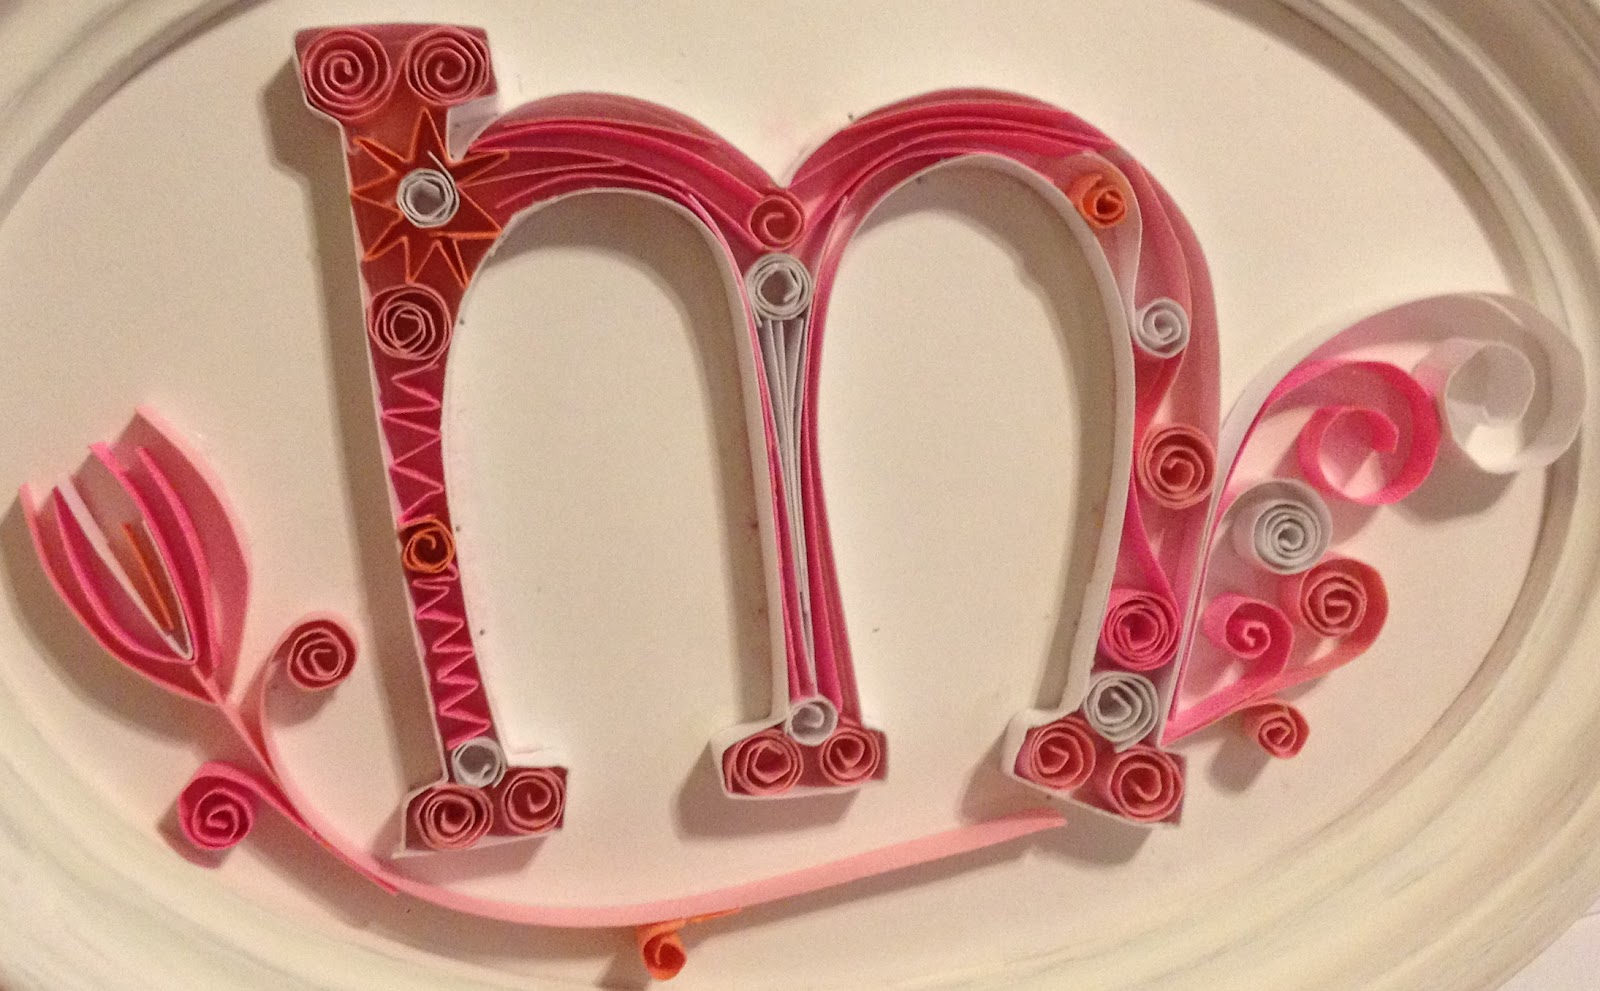 World of yourcrafts quilling a letter quilling a letter altavistaventures Images